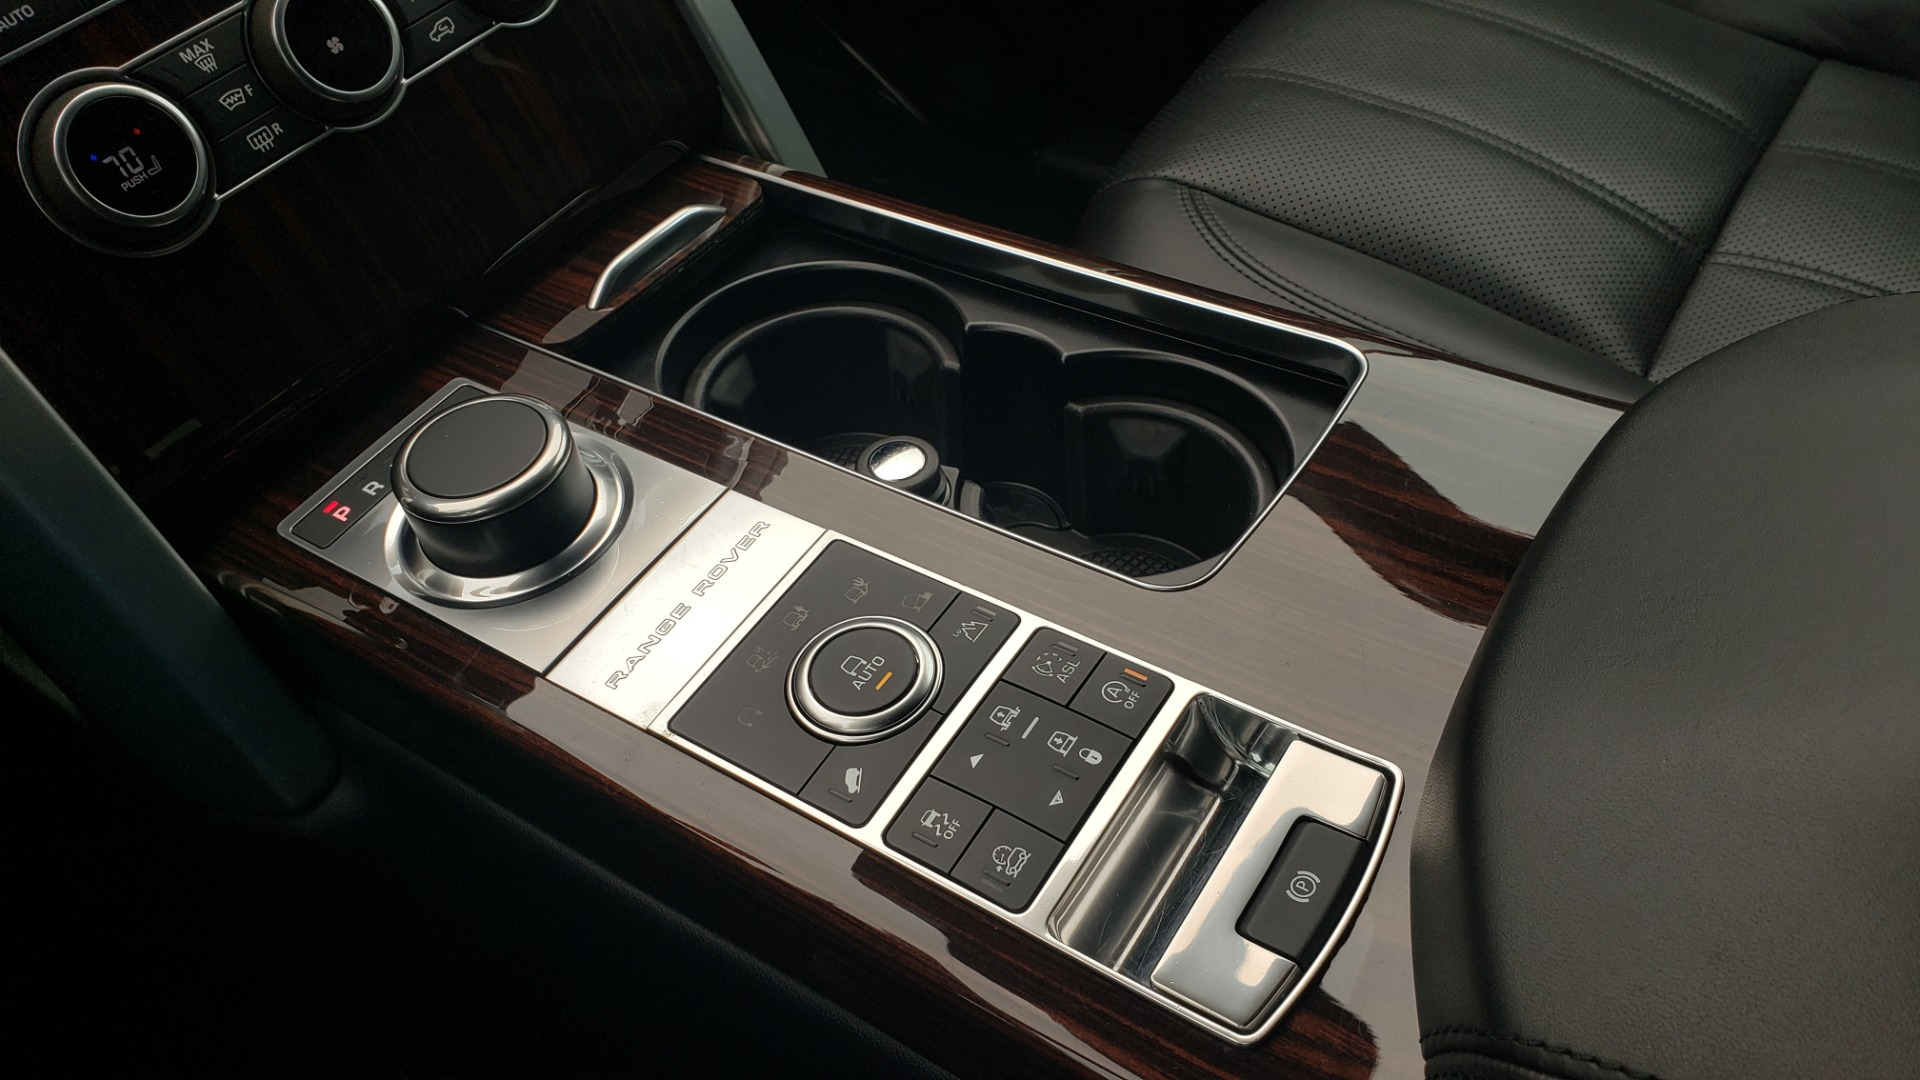 Used 2016 Land Rover Range Rover HSE 3.0L SC V6 / NAV / PANO-ROOF / VENT SEATS / REARVIEW / BLIND SPOT for sale Sold at Formula Imports in Charlotte NC 28227 53